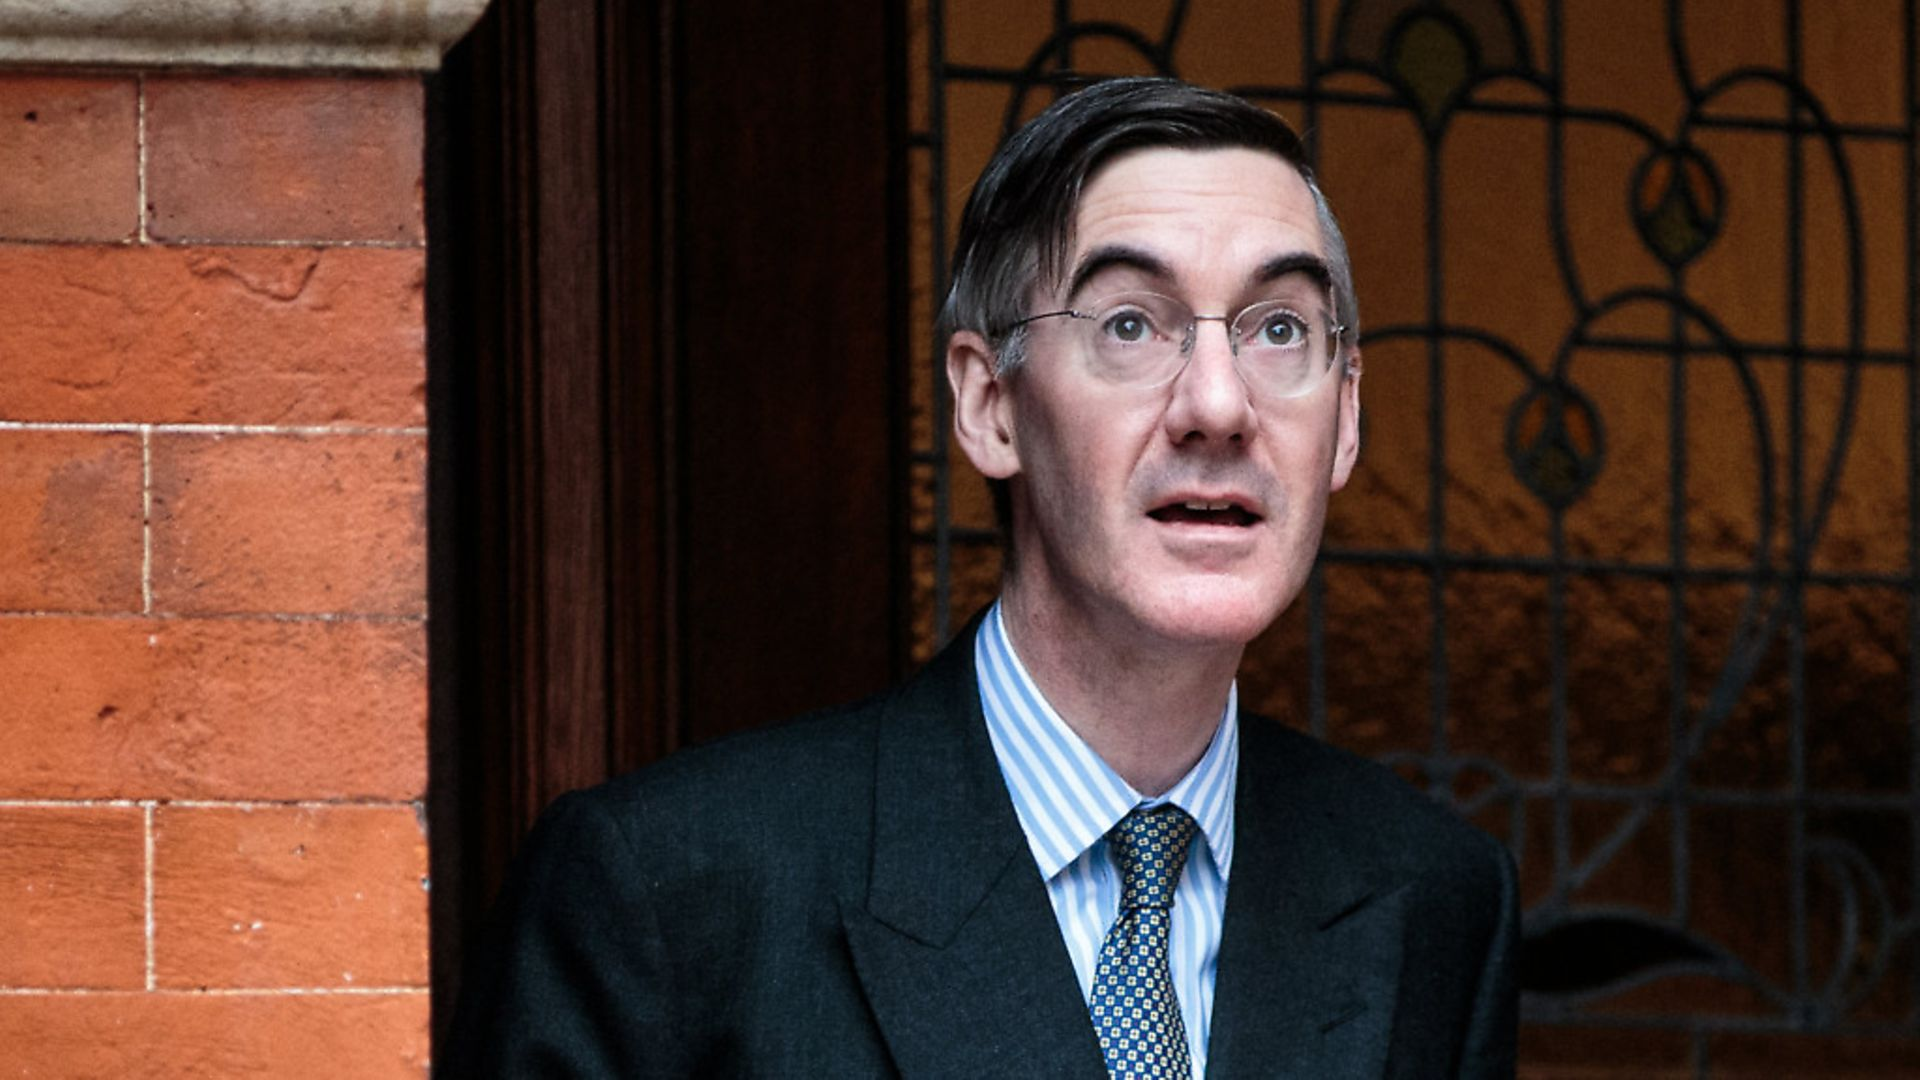 Brexit is proving good for business for Jacob Rees-Mogg, says Tim Walker. Photo by Jack Taylor/Getty Images - Credit: Getty Images